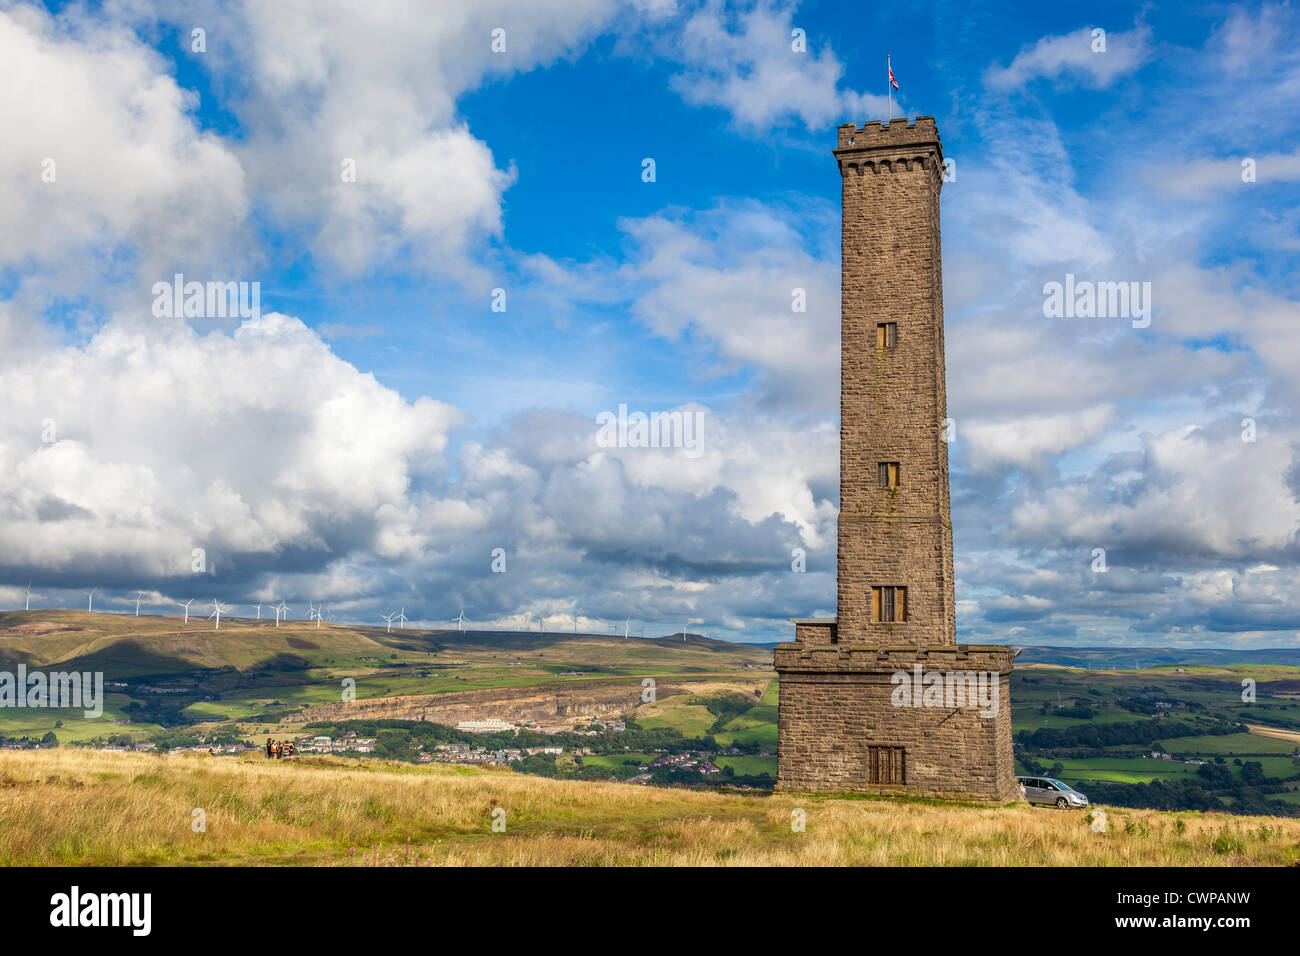 The Peel tower at Holcombe in Lancashire. Commemorates Sir Robert Peel one time Prime Minister of Great Britain. - Stock Image